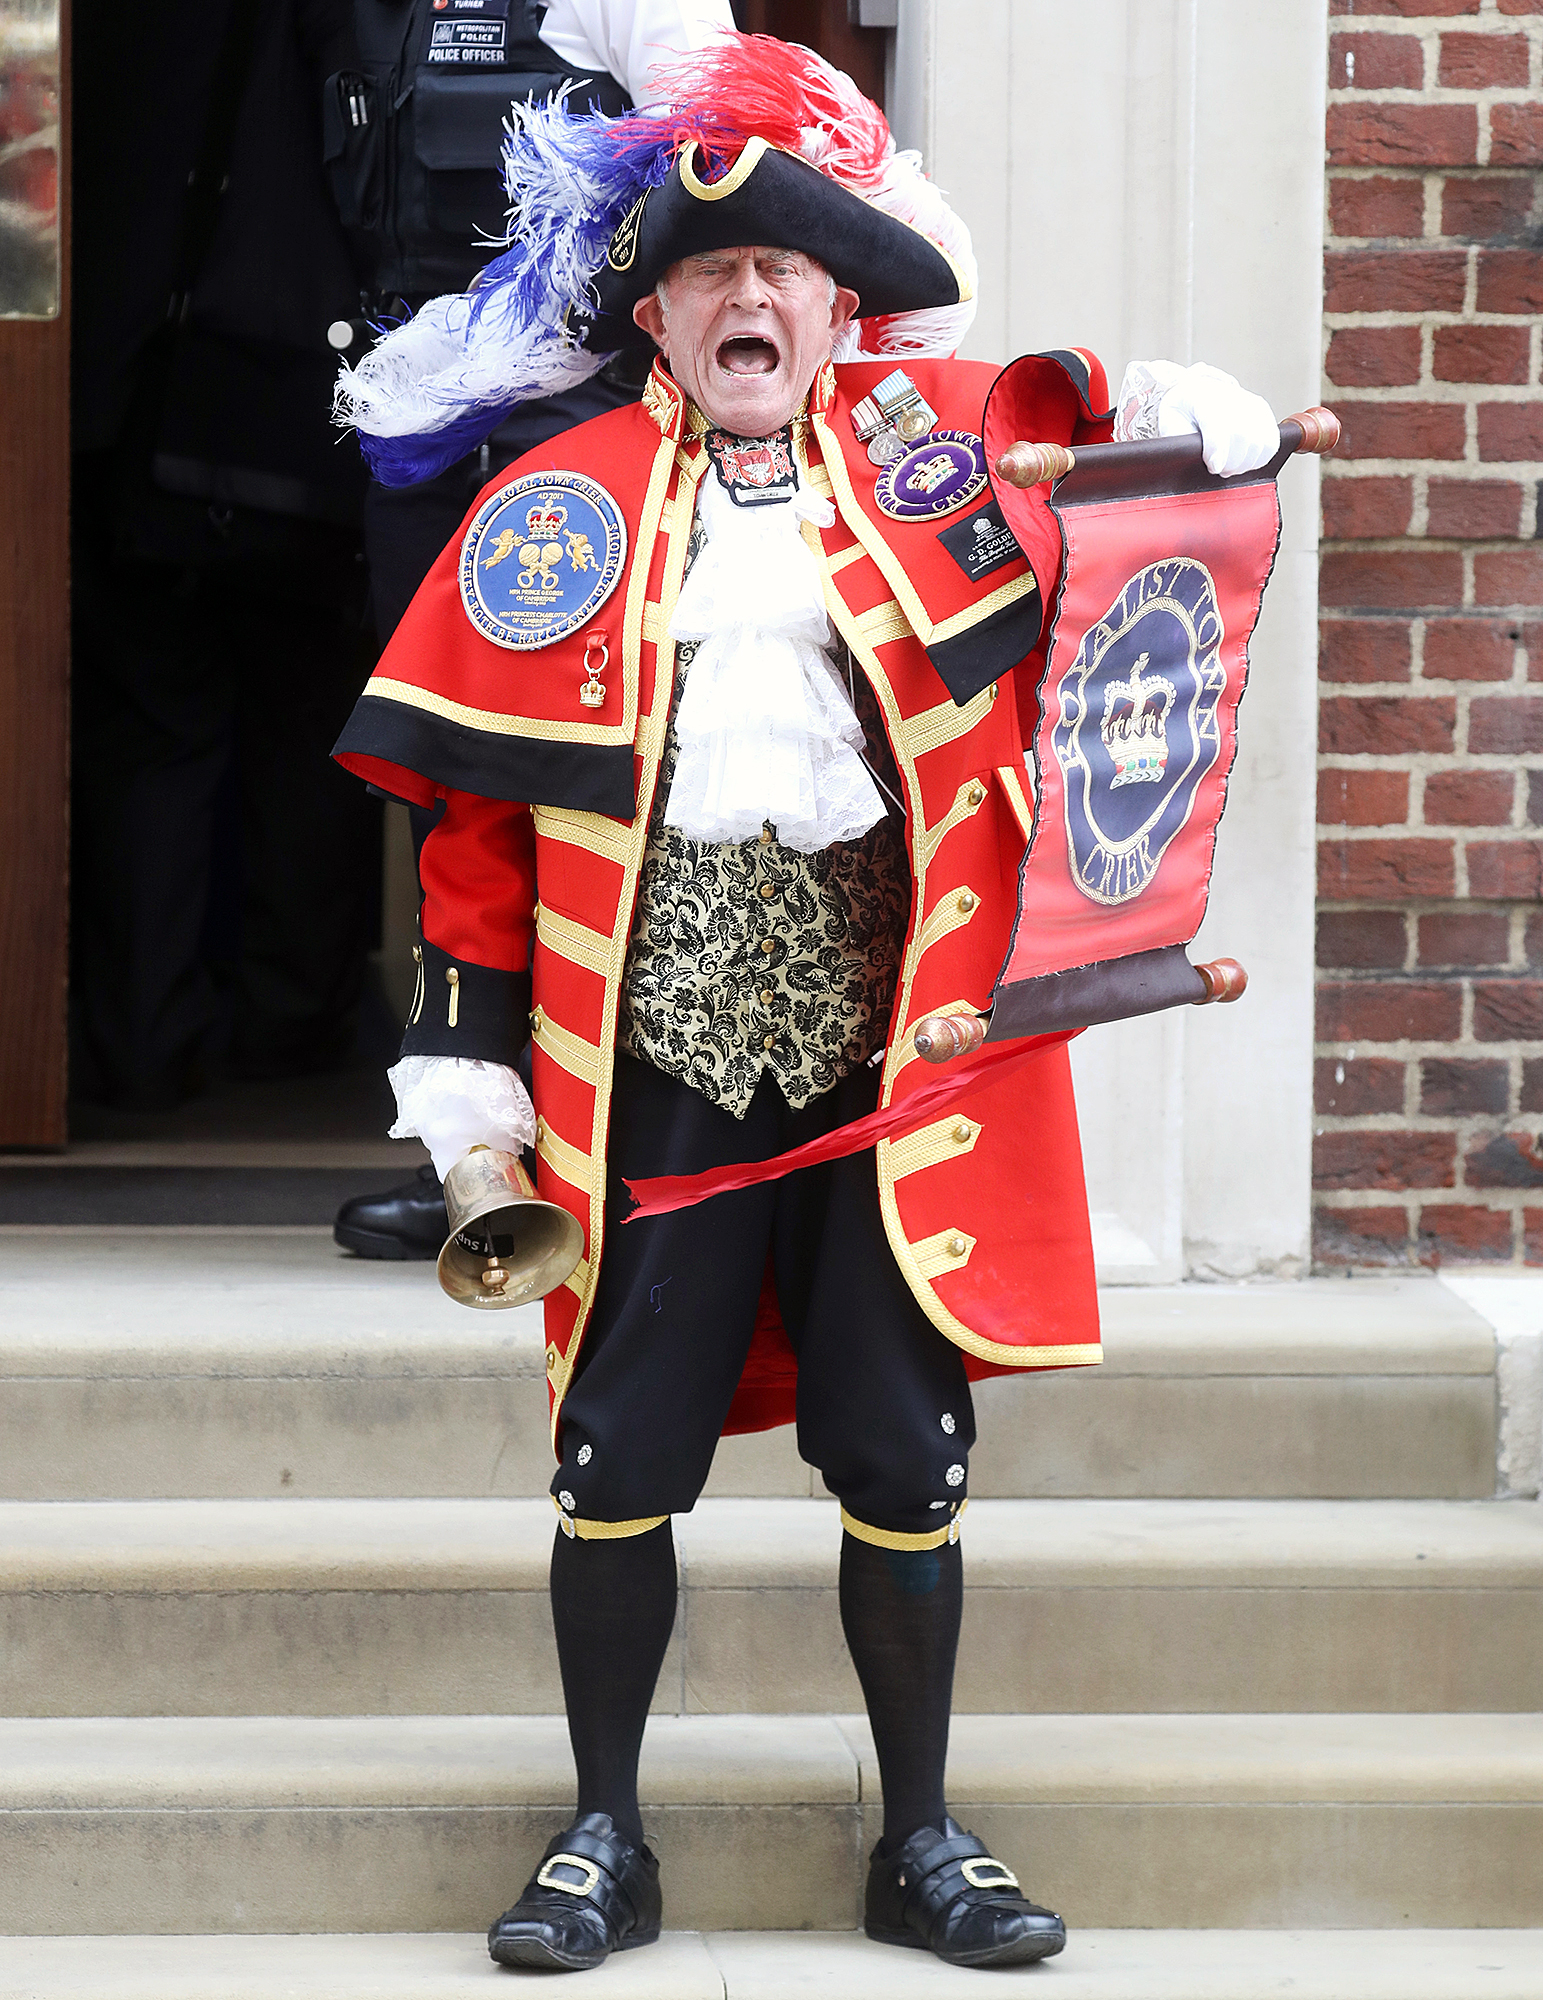 Town Crier Royal Baby Announcement